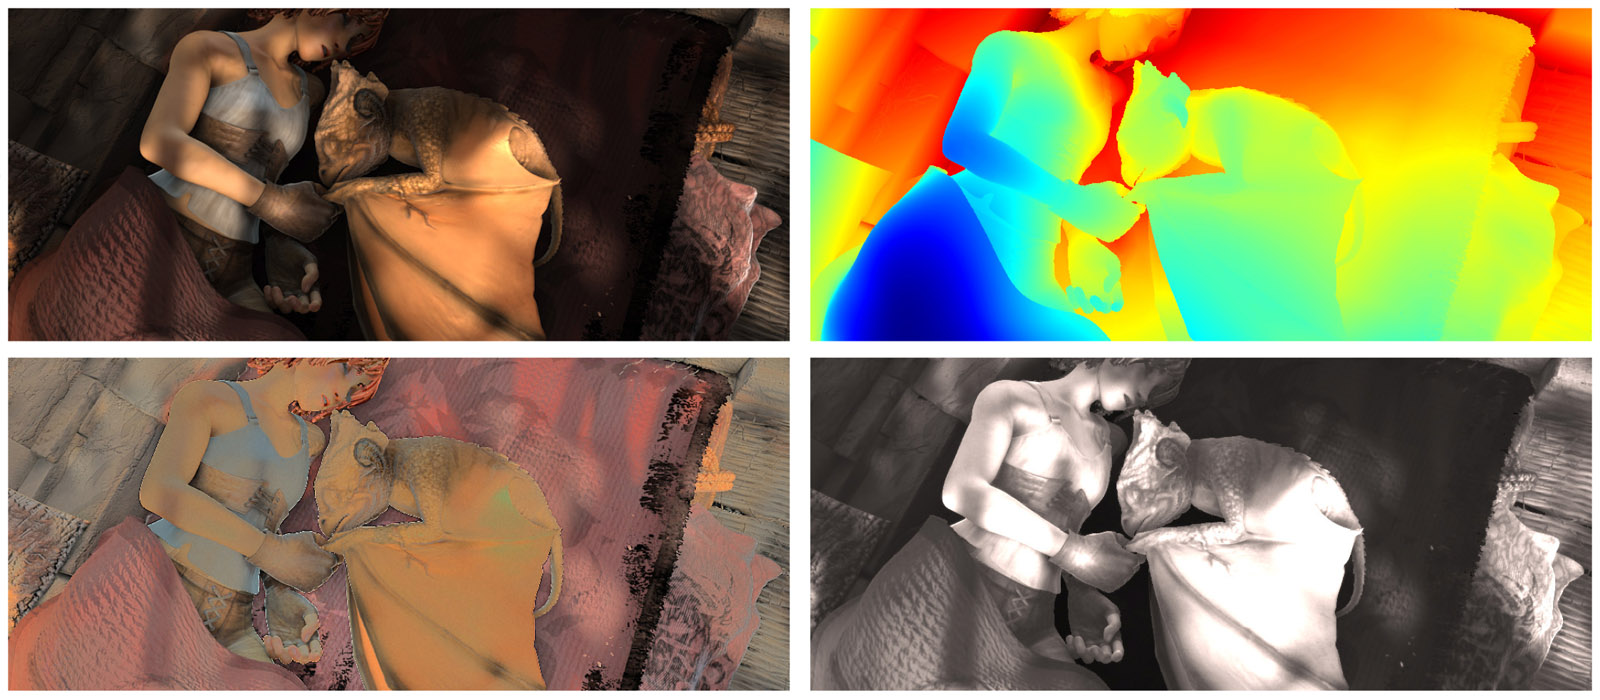 Intrinsic Image Decomposition with Depth Cues